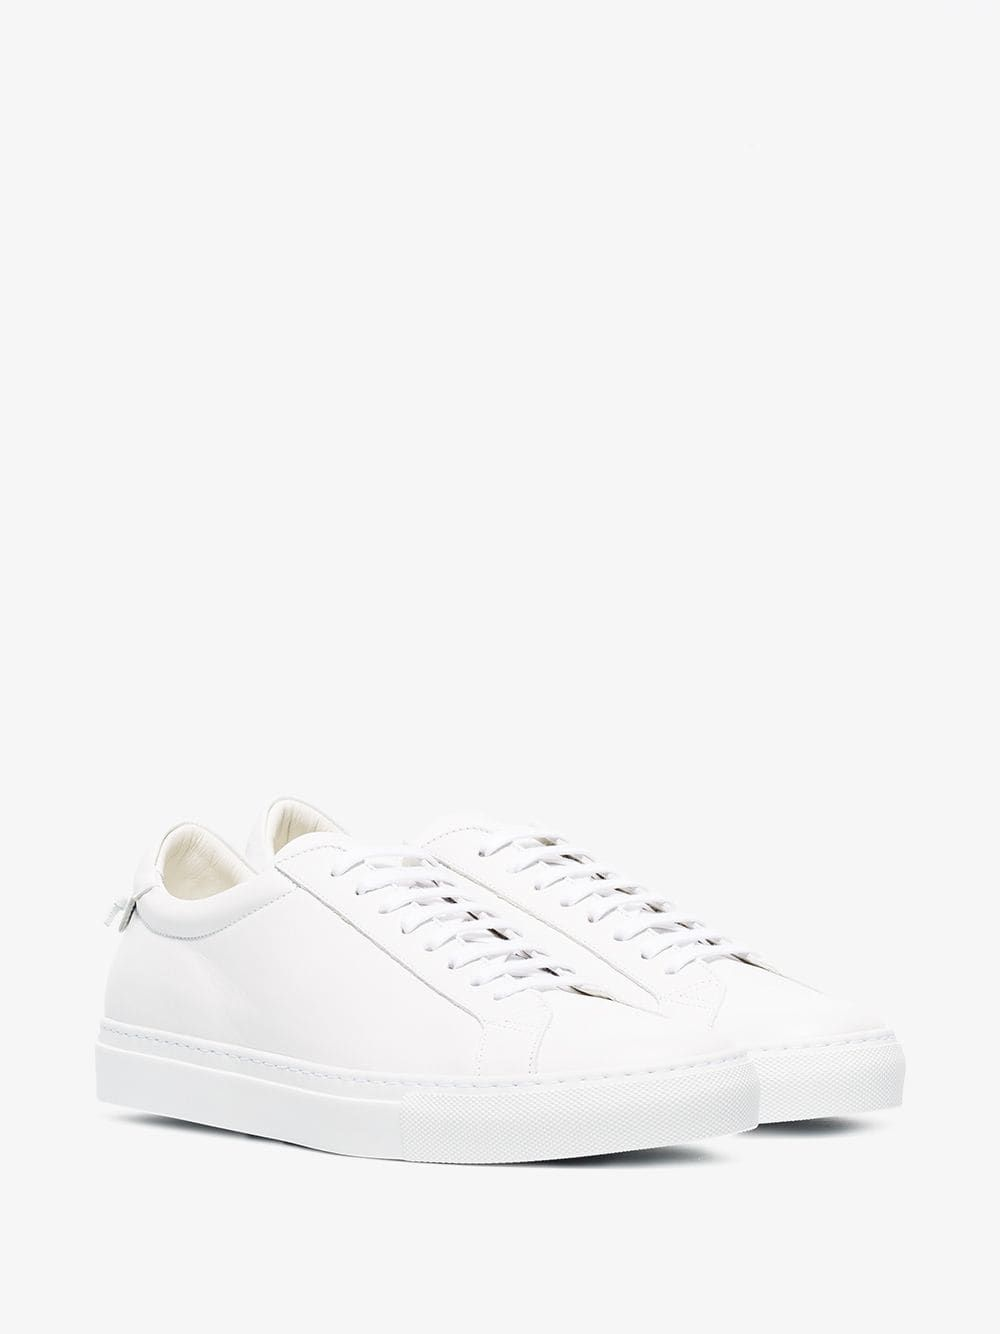 Sheep Leather Sneakers In 100 White